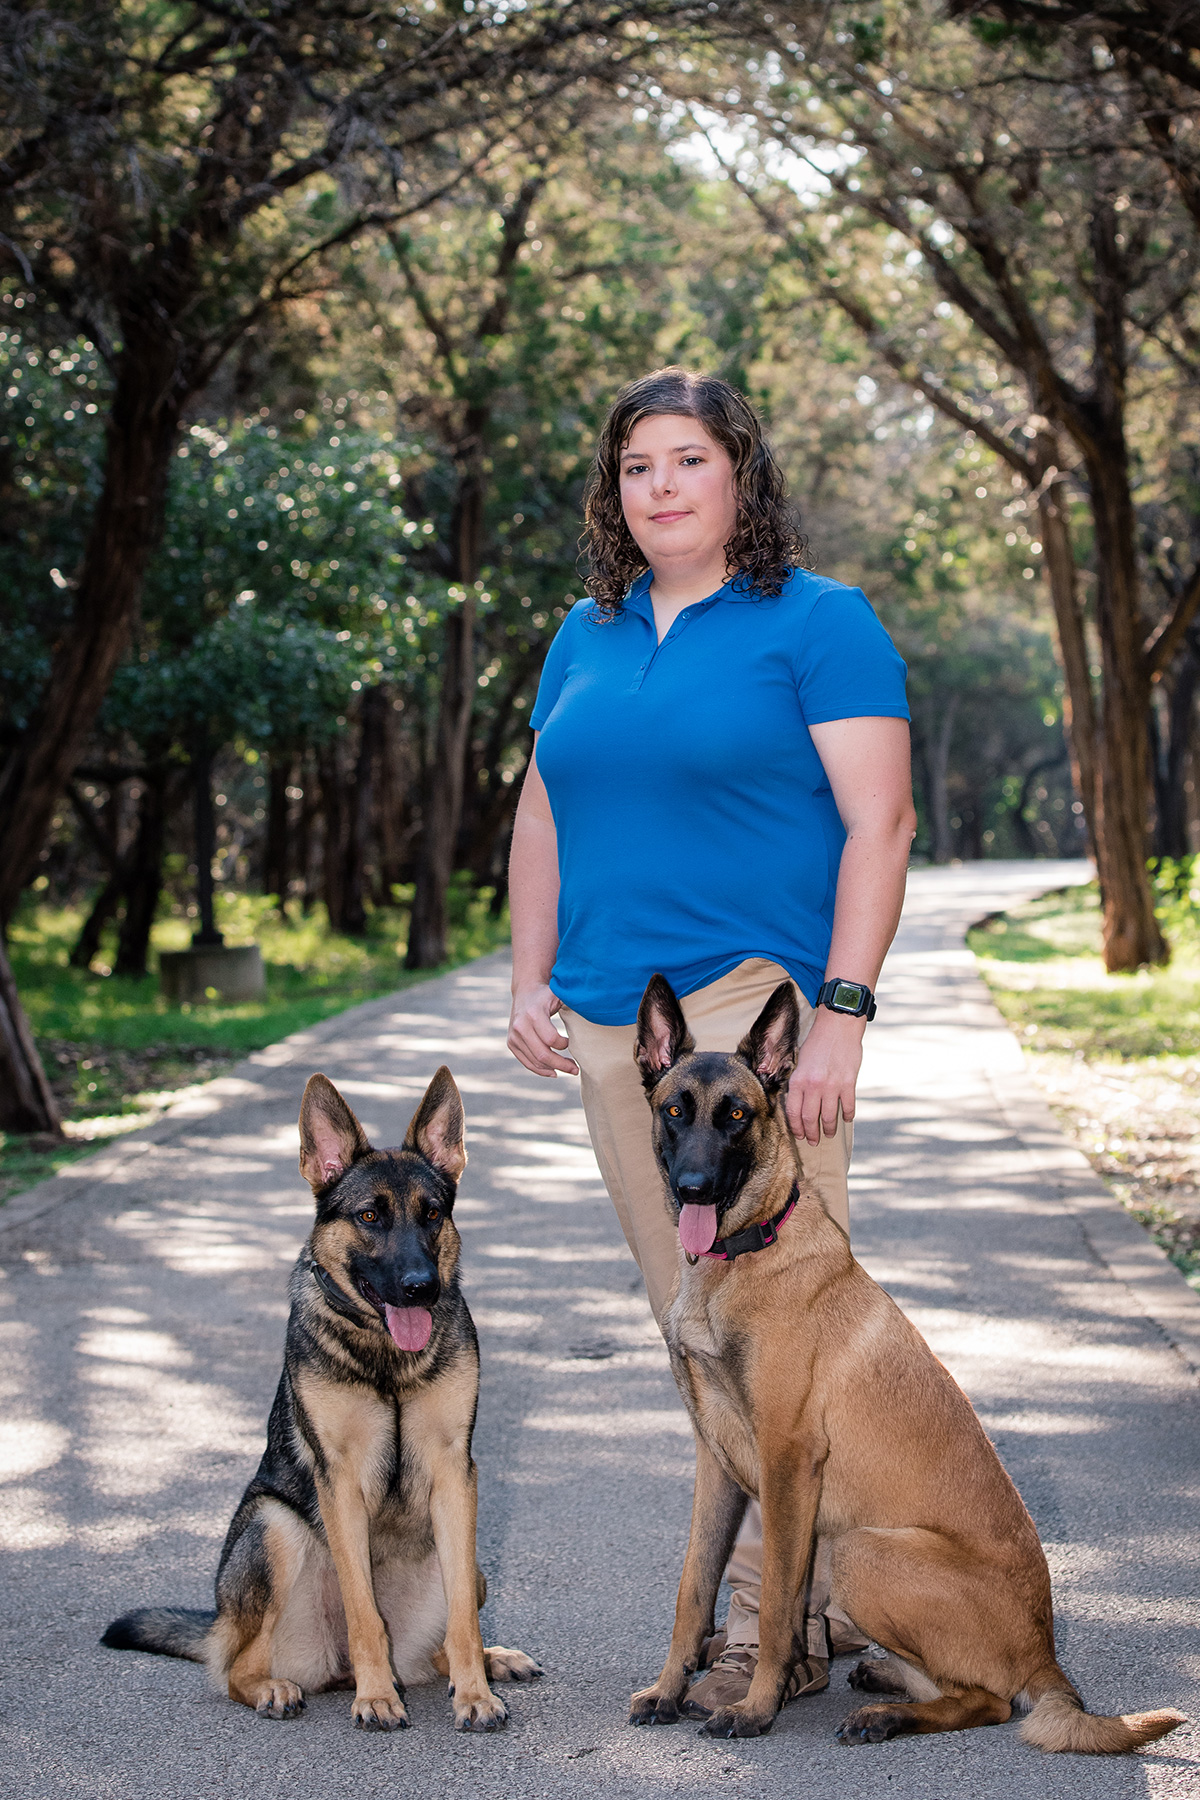 Bexar county physical therapy - San Antonio New Braunfels Bexar County Therapy Dog Trainer